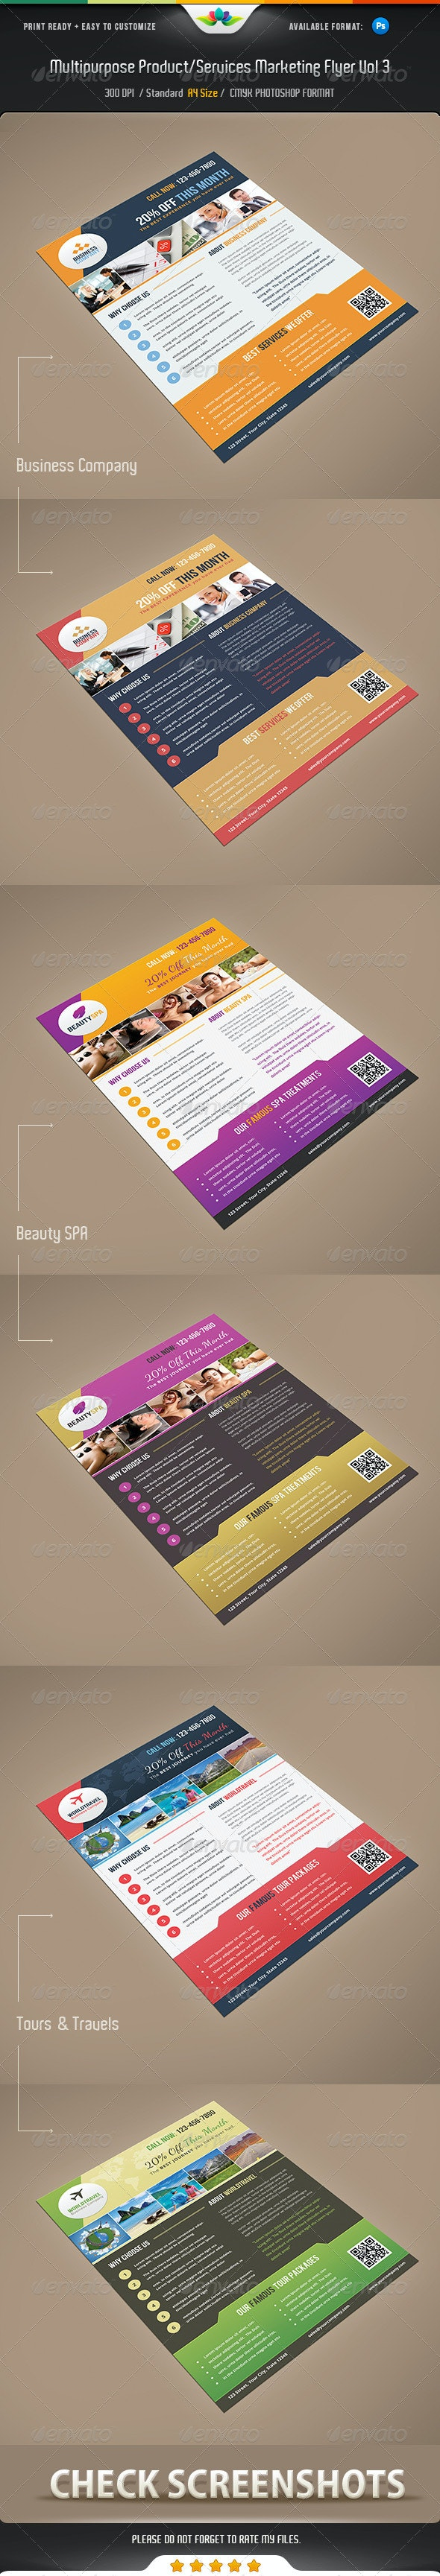 Multipurpose Product / Services Offer Flyer Vol 3 - Corporate Flyers